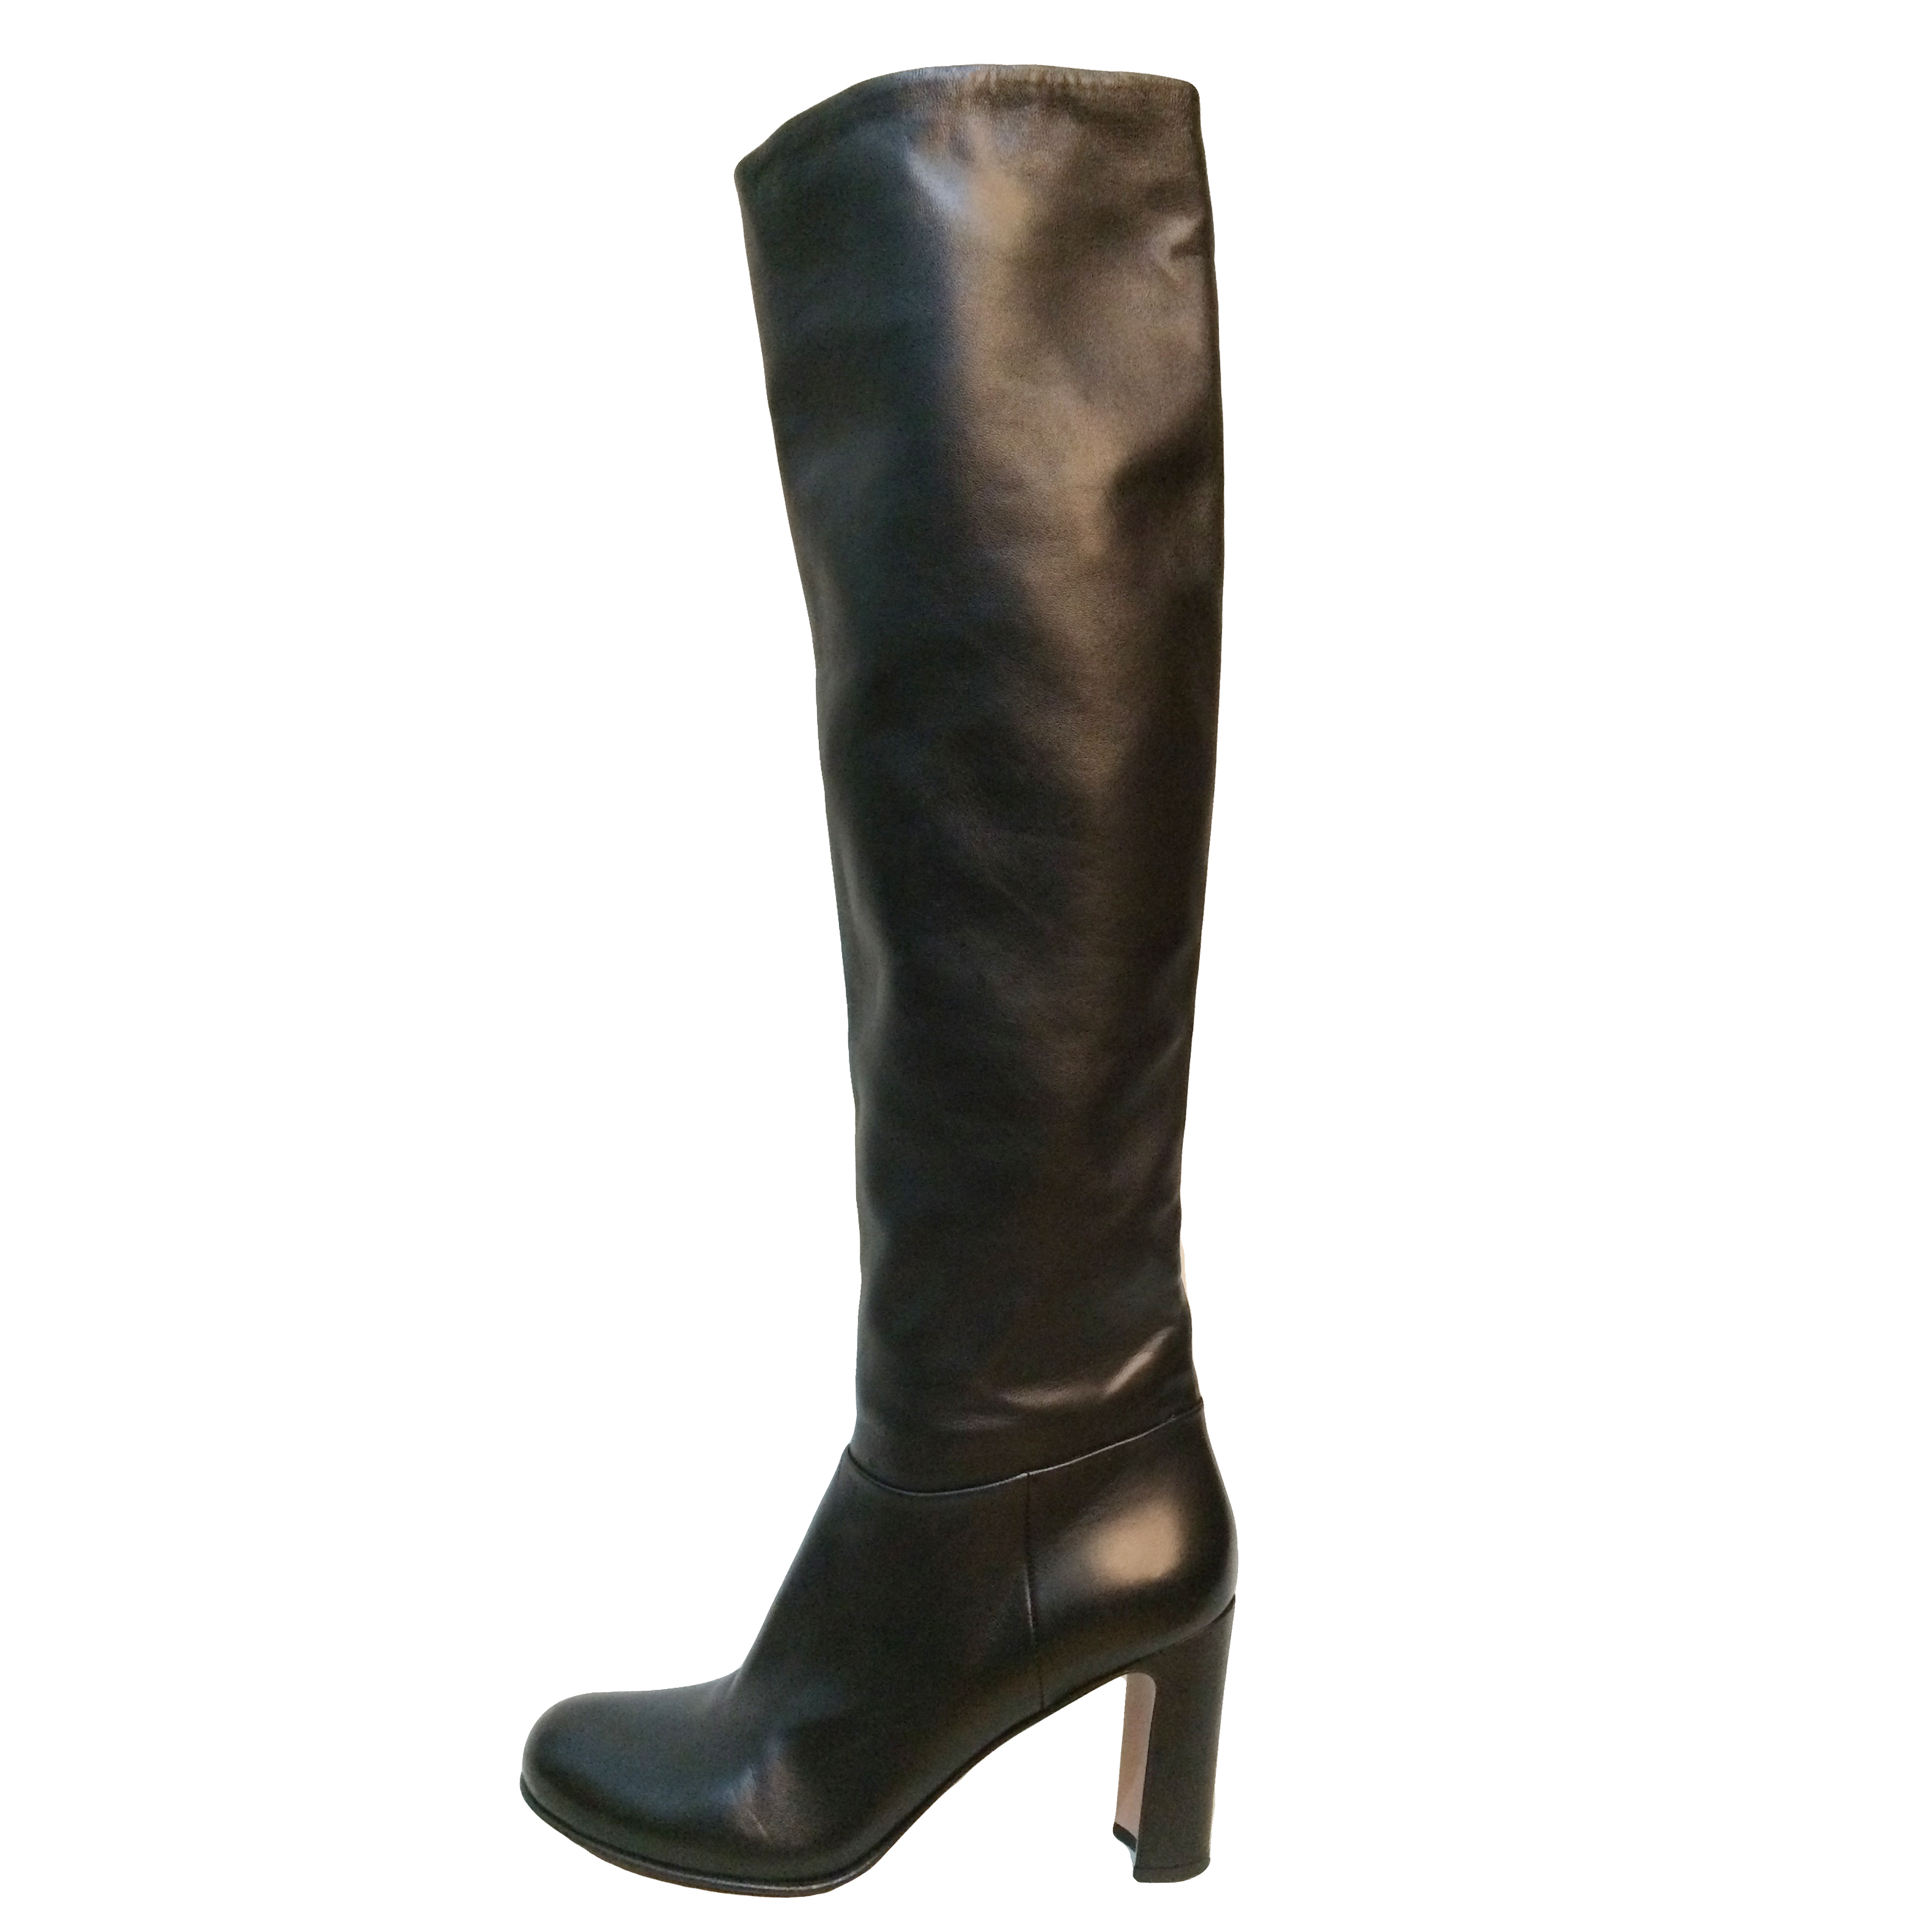 a4aebe4d6911 Prada Over Knee Black Leather Boots